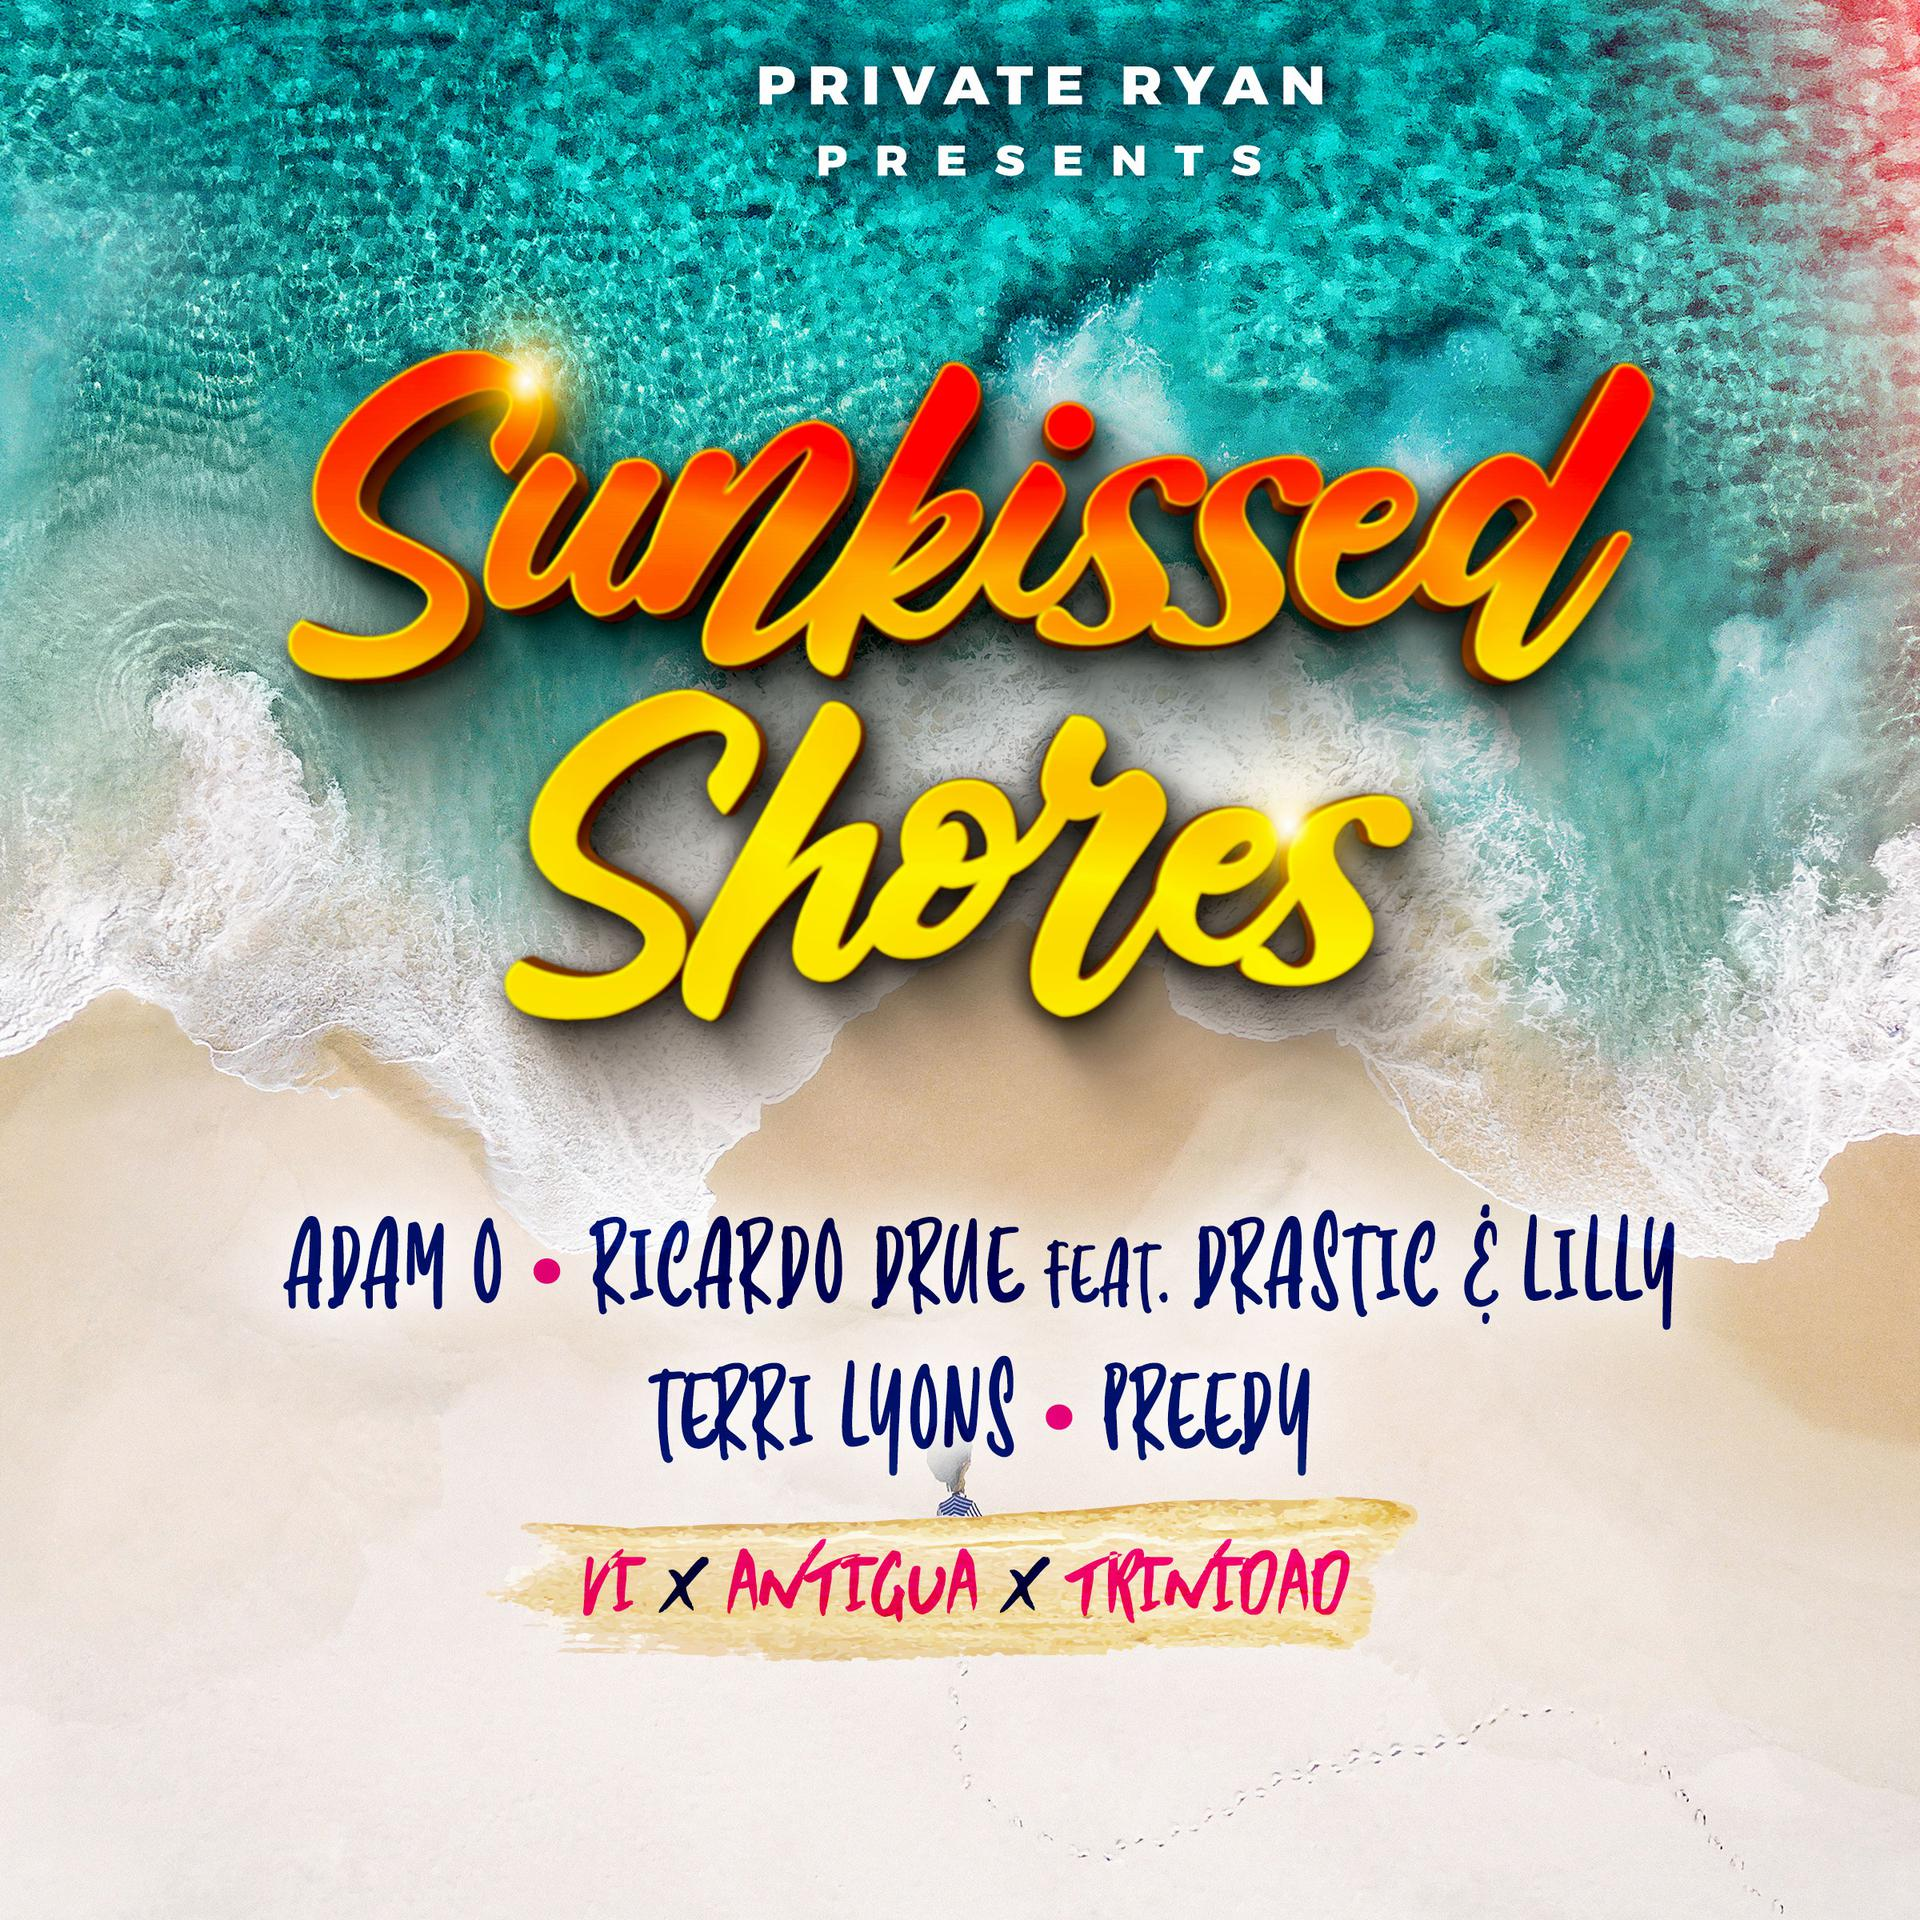 DJ Private Ryan Presents Sunkissed Shores EP